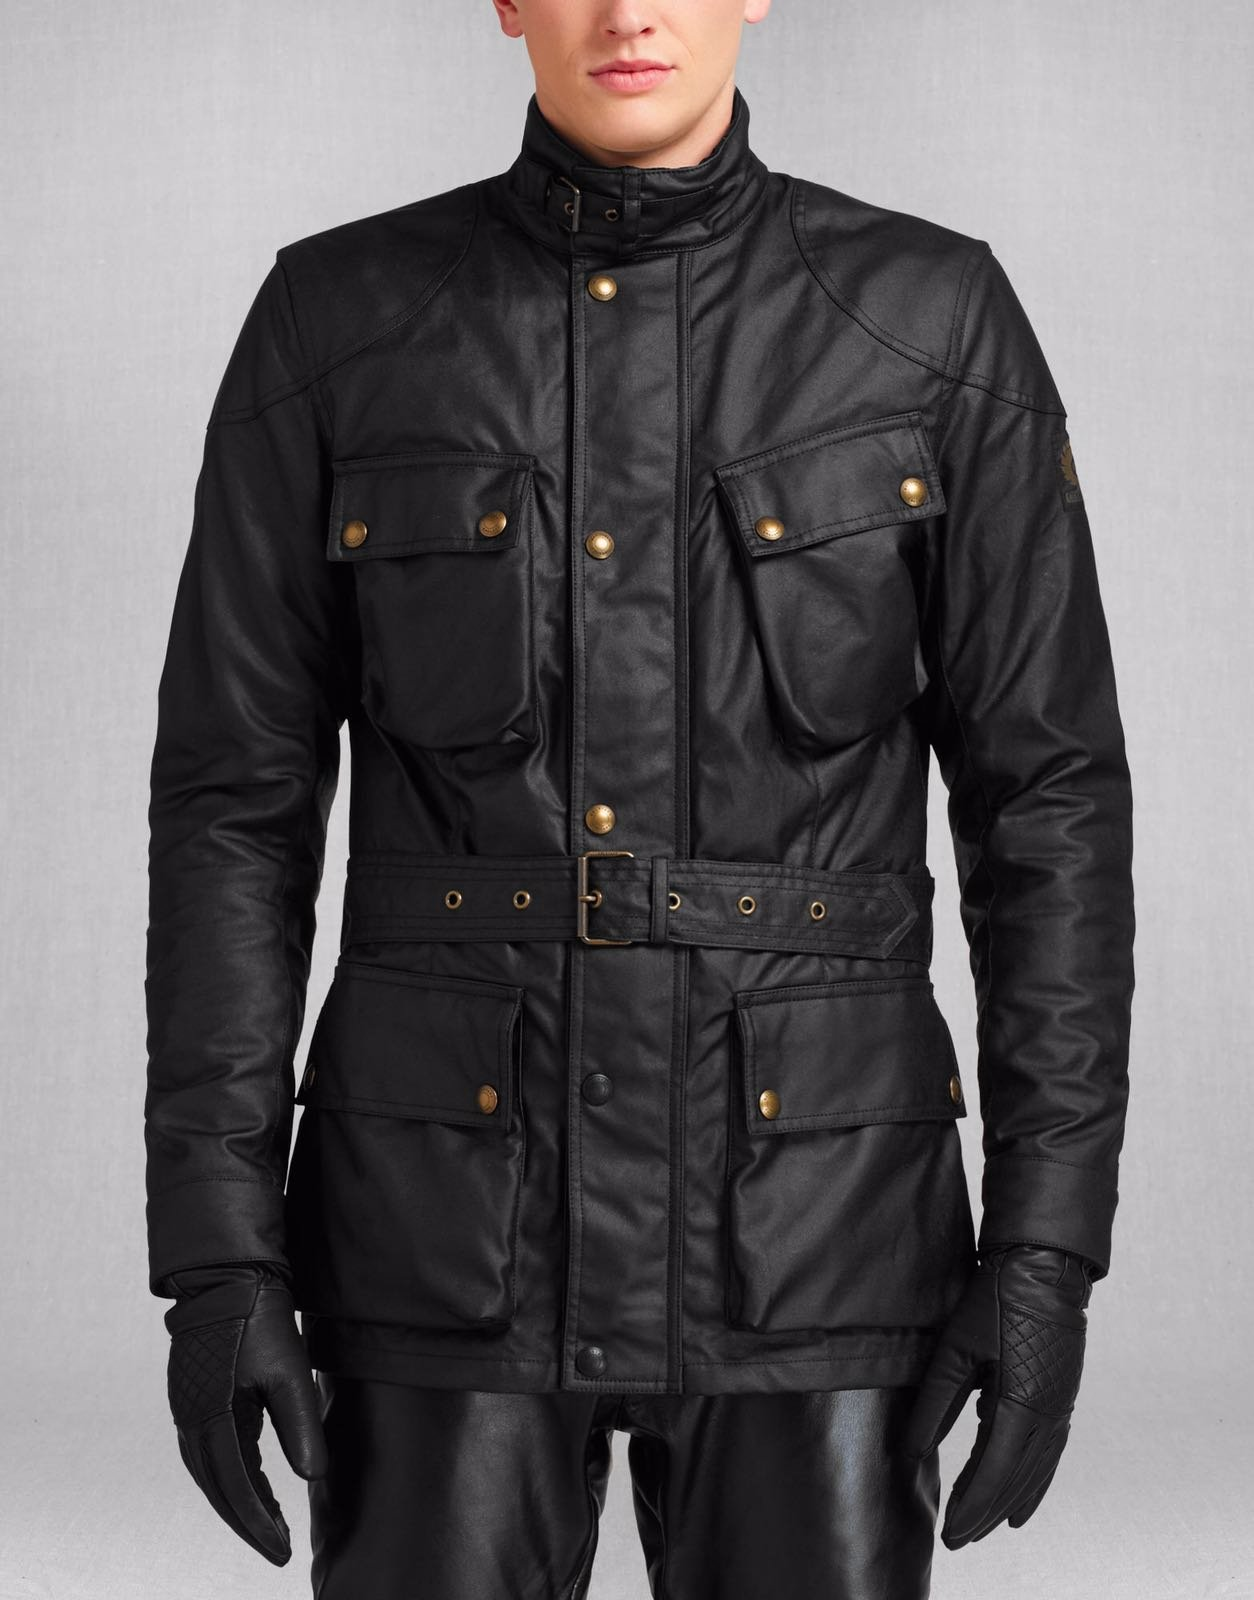 ded7502817b Get Quotations · HWK Textile Motorcycle Jacket Coat Motorbike Jacket Biker  Cordura Waterproof CE Armoured Breathable 100% Waterproof